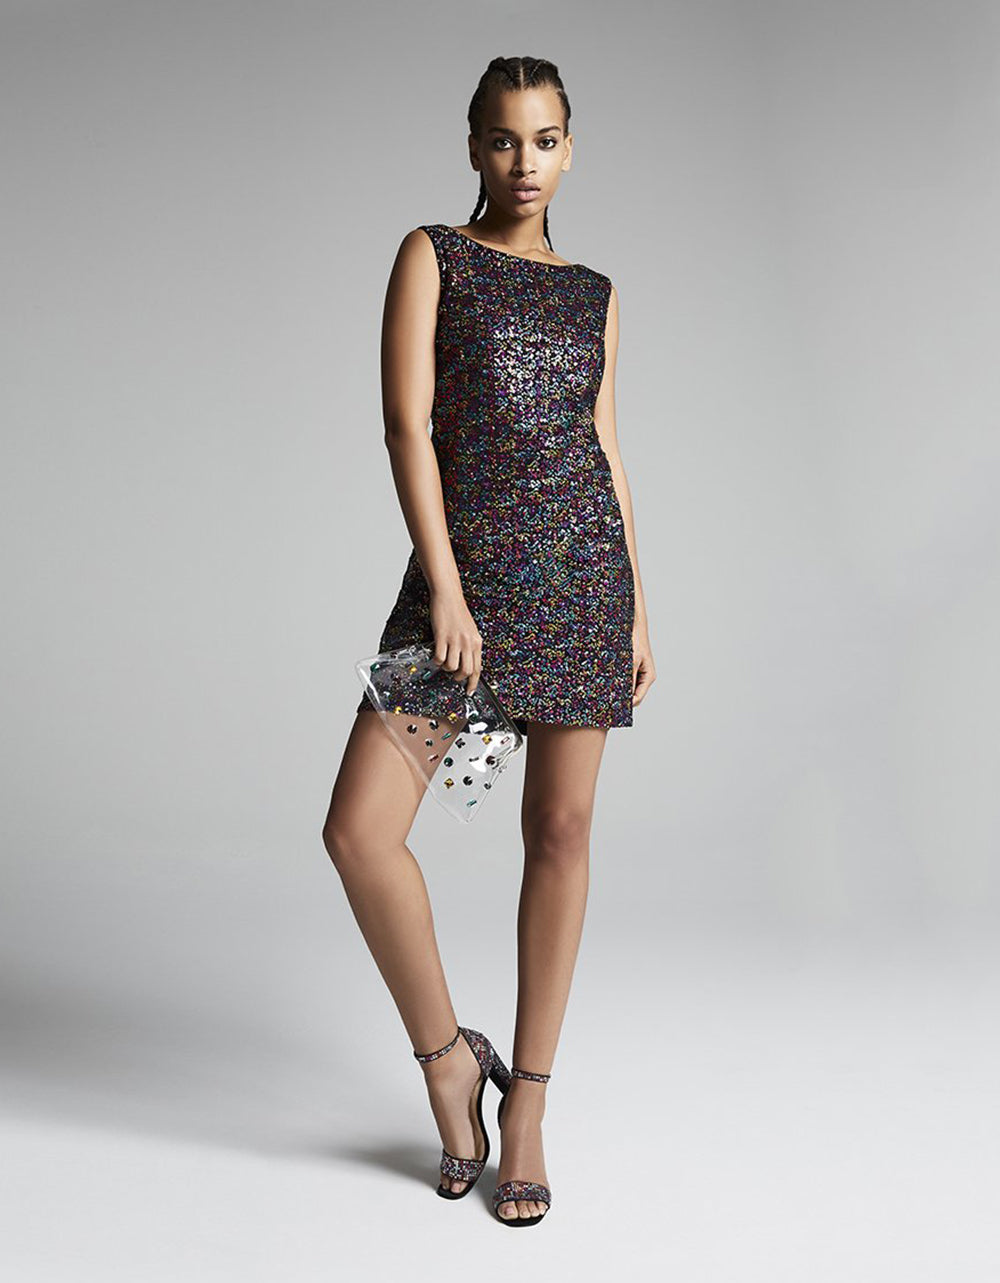 CONFETTI SEQUIN DRESS RAINBOW MULTI - APPAREL - Betsey Johnson